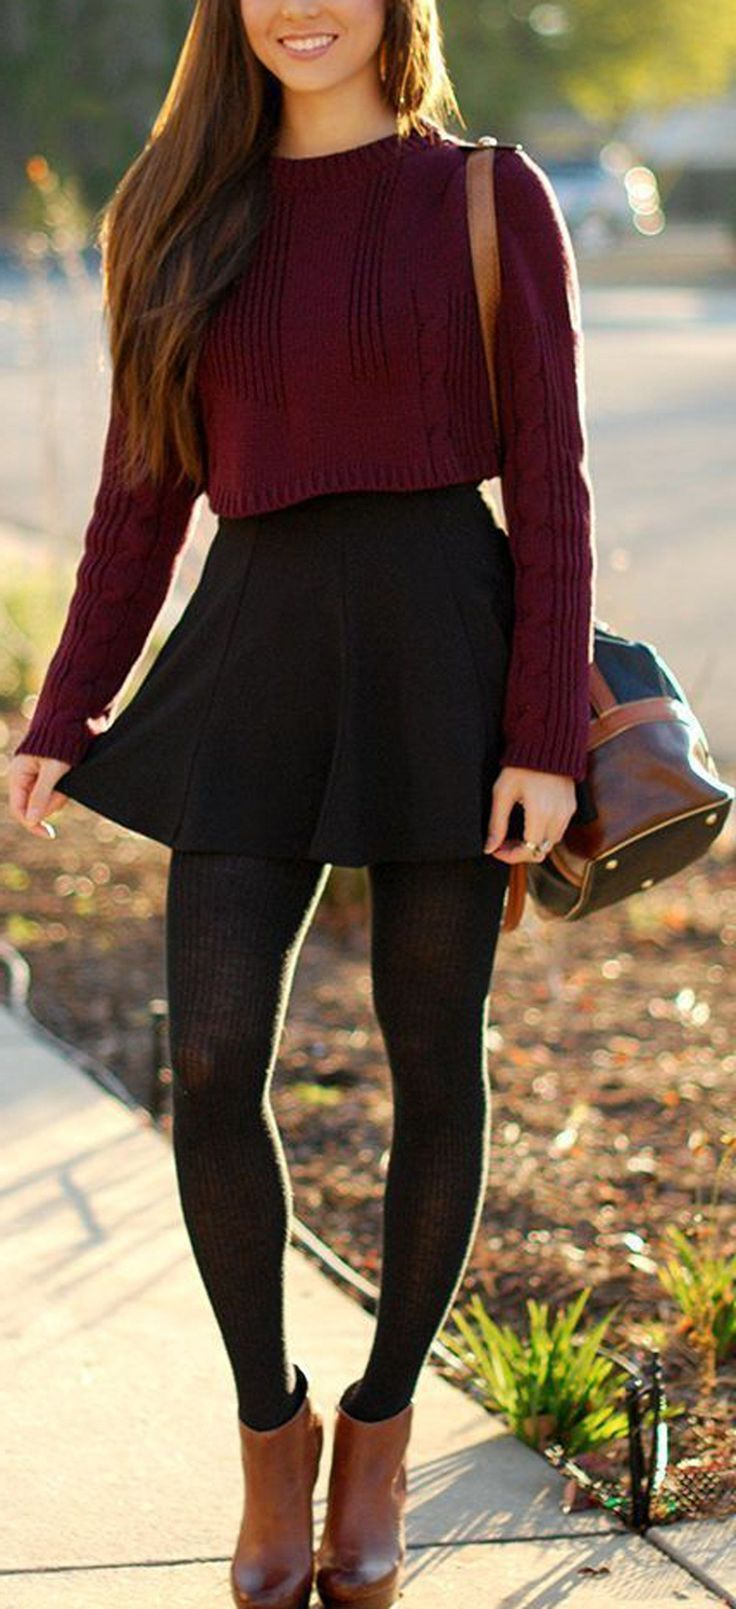 Classy Winter Outfit Ideas for Teens for Teen Girls Crop Top Skater Skirt St